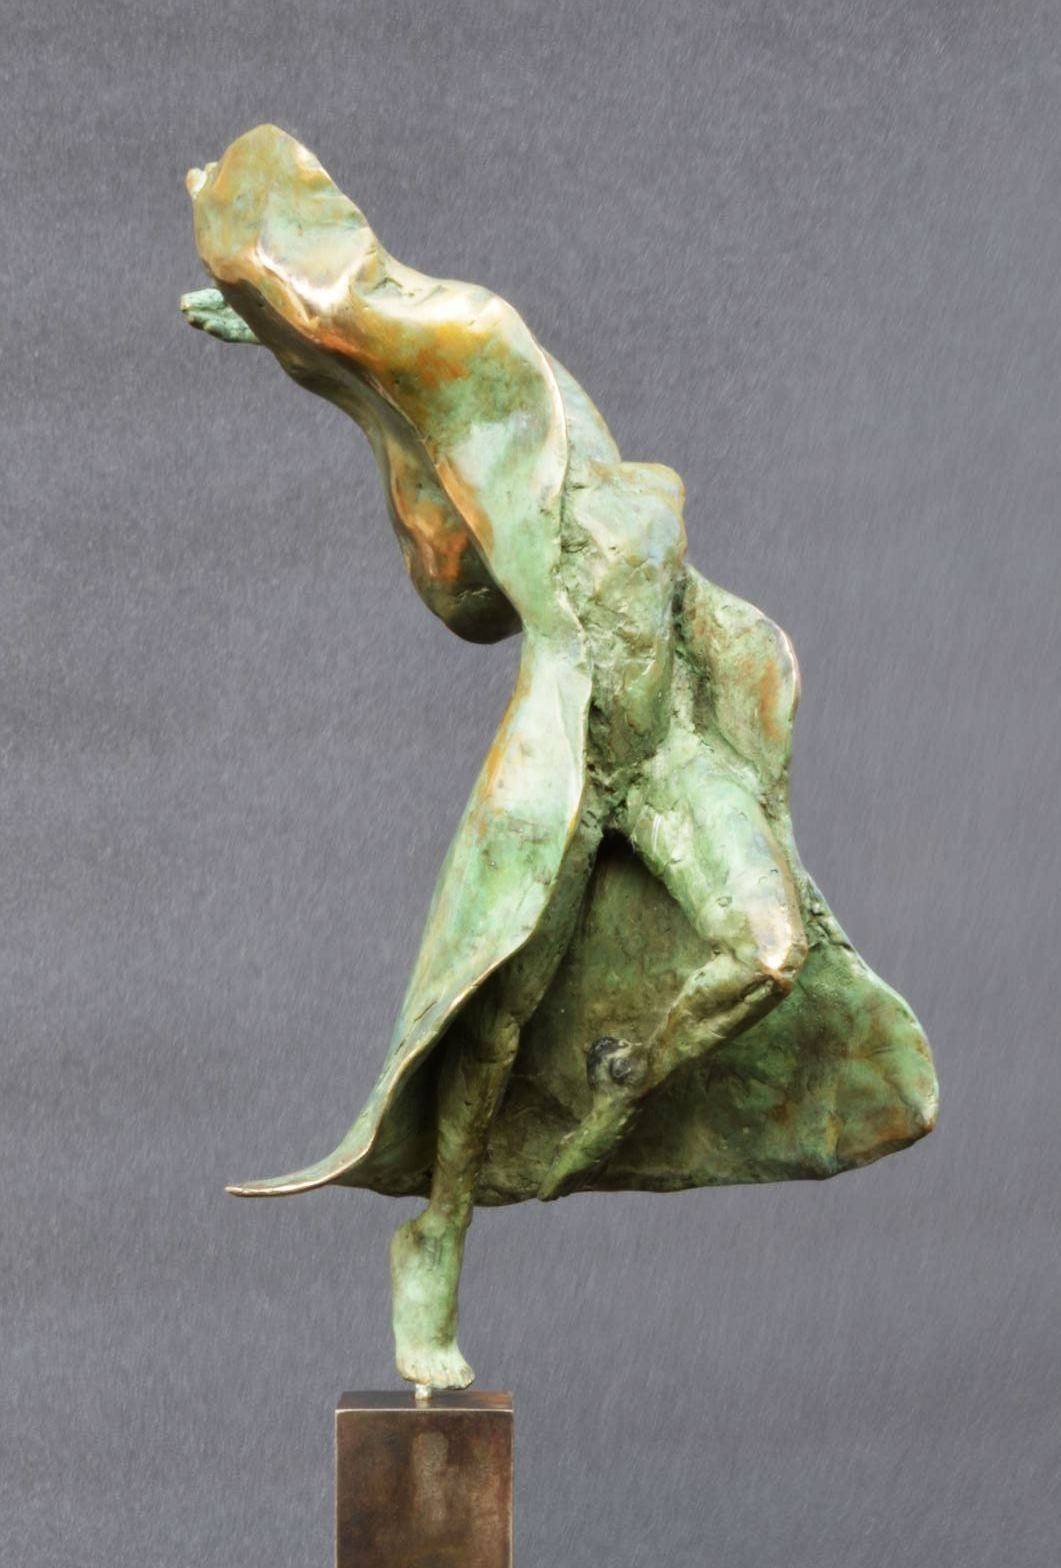 Danseuse moderne III,Yann Guillon,Sculpture contemporaine, detail 2